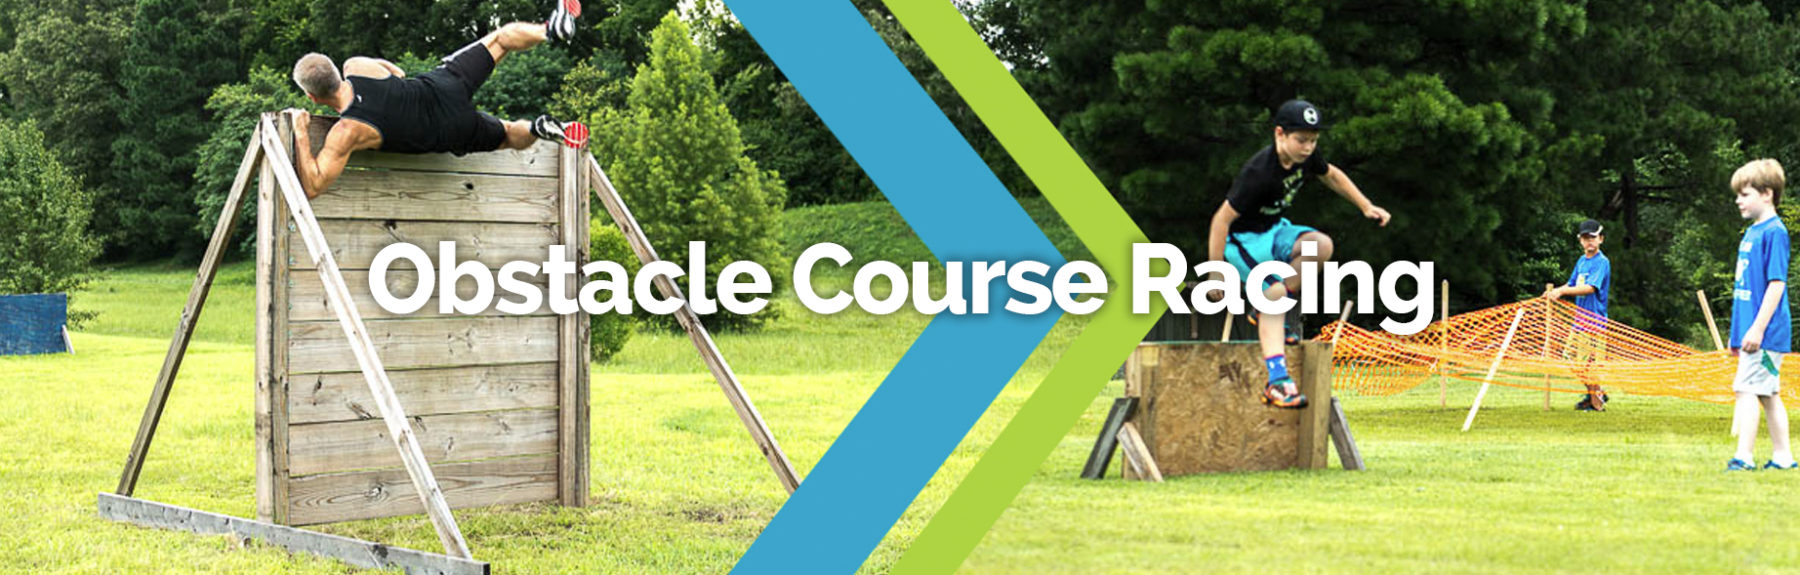 obstacle course racing classes at fusion fitness memphis